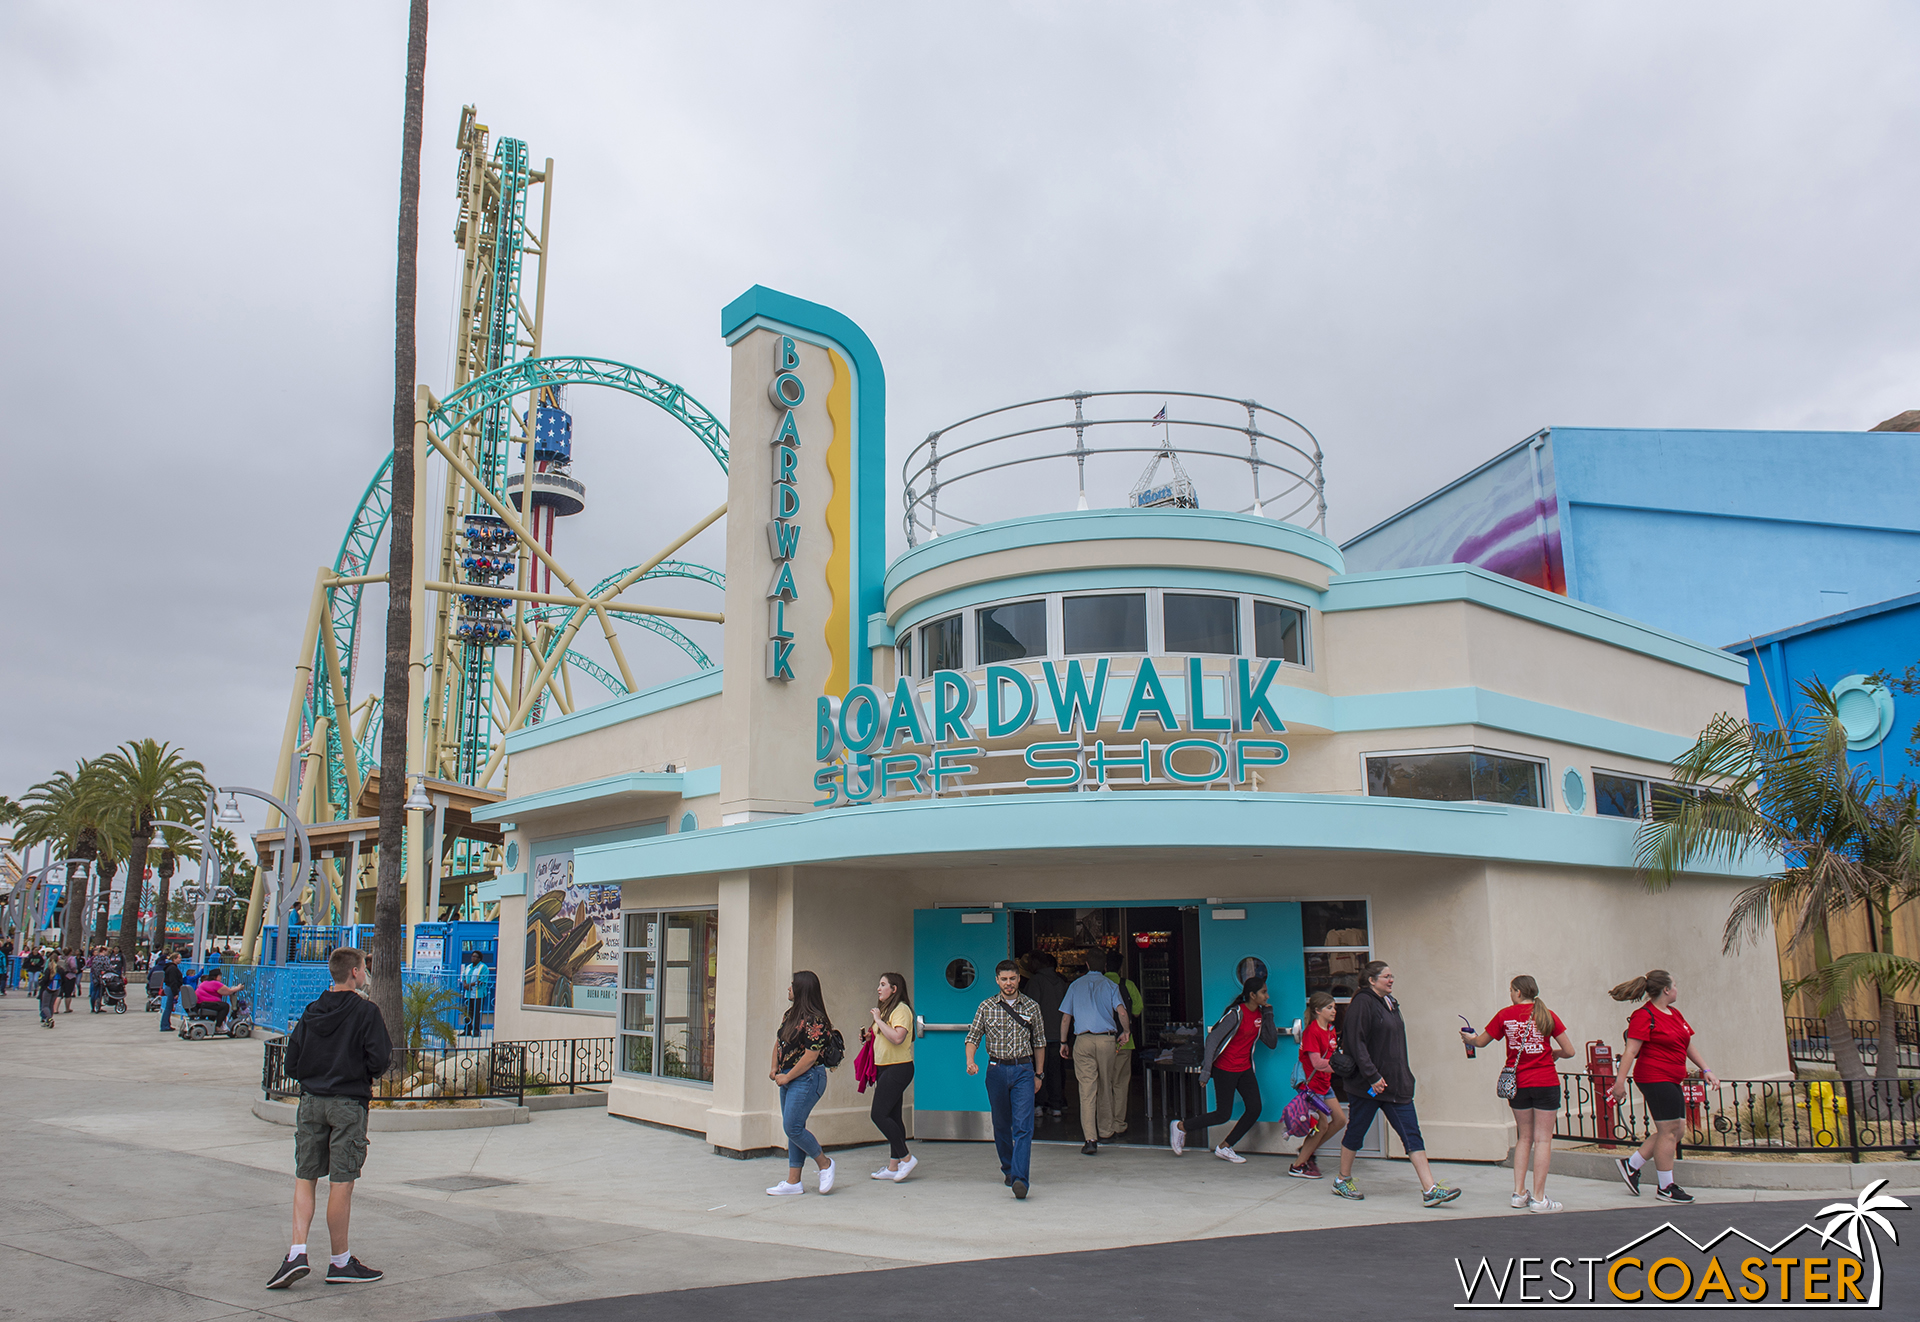 The Boardwalk Surf Shop is now open for business!